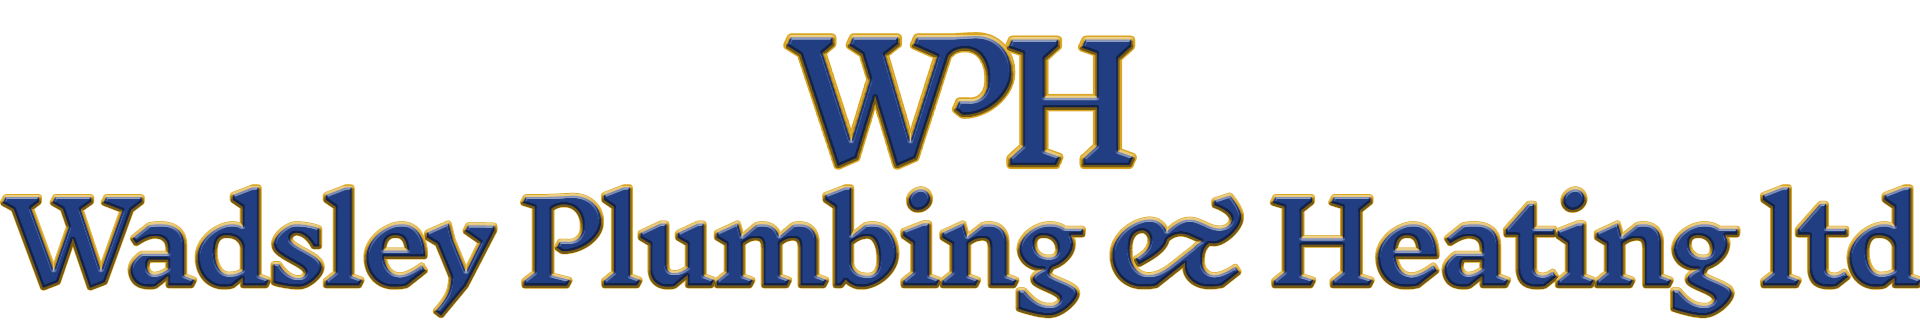 Wadsley Plumbing and Heating Ltd, efficient plumbers in Sheffield